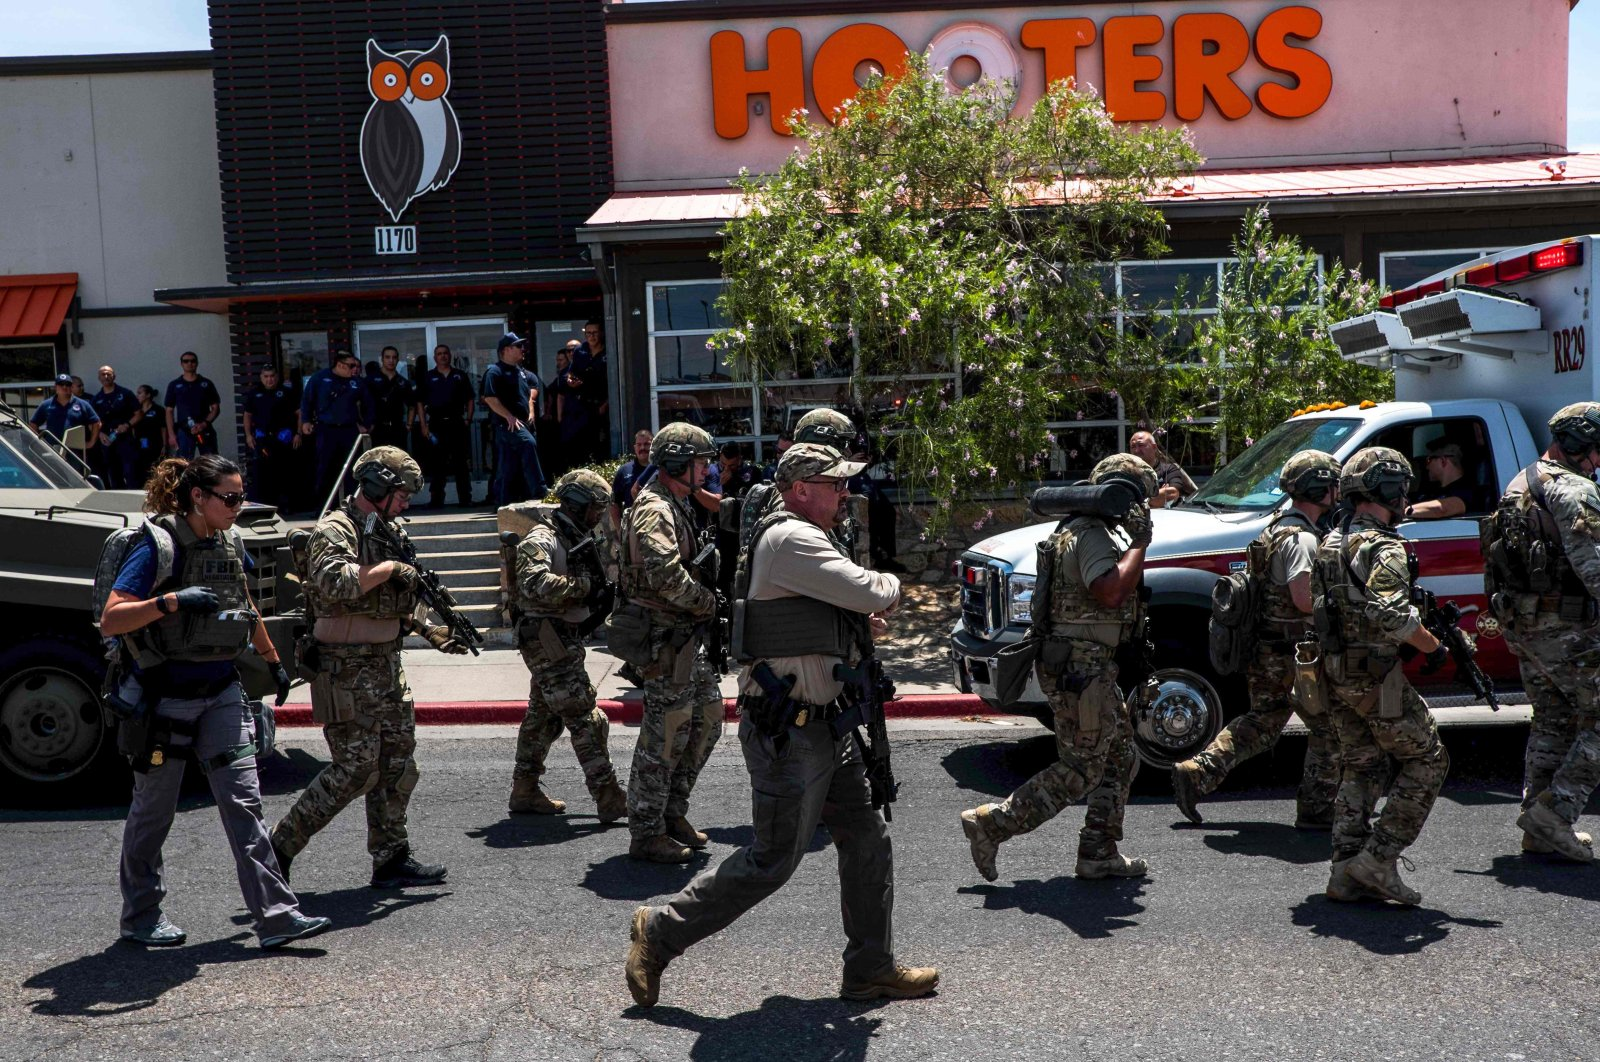 Law enforcement agencies respond to an active shooter at a Walmart near Cielo Vista Mall in El Paso, Texas, Aug. 3, 2019. (AFP Photo)